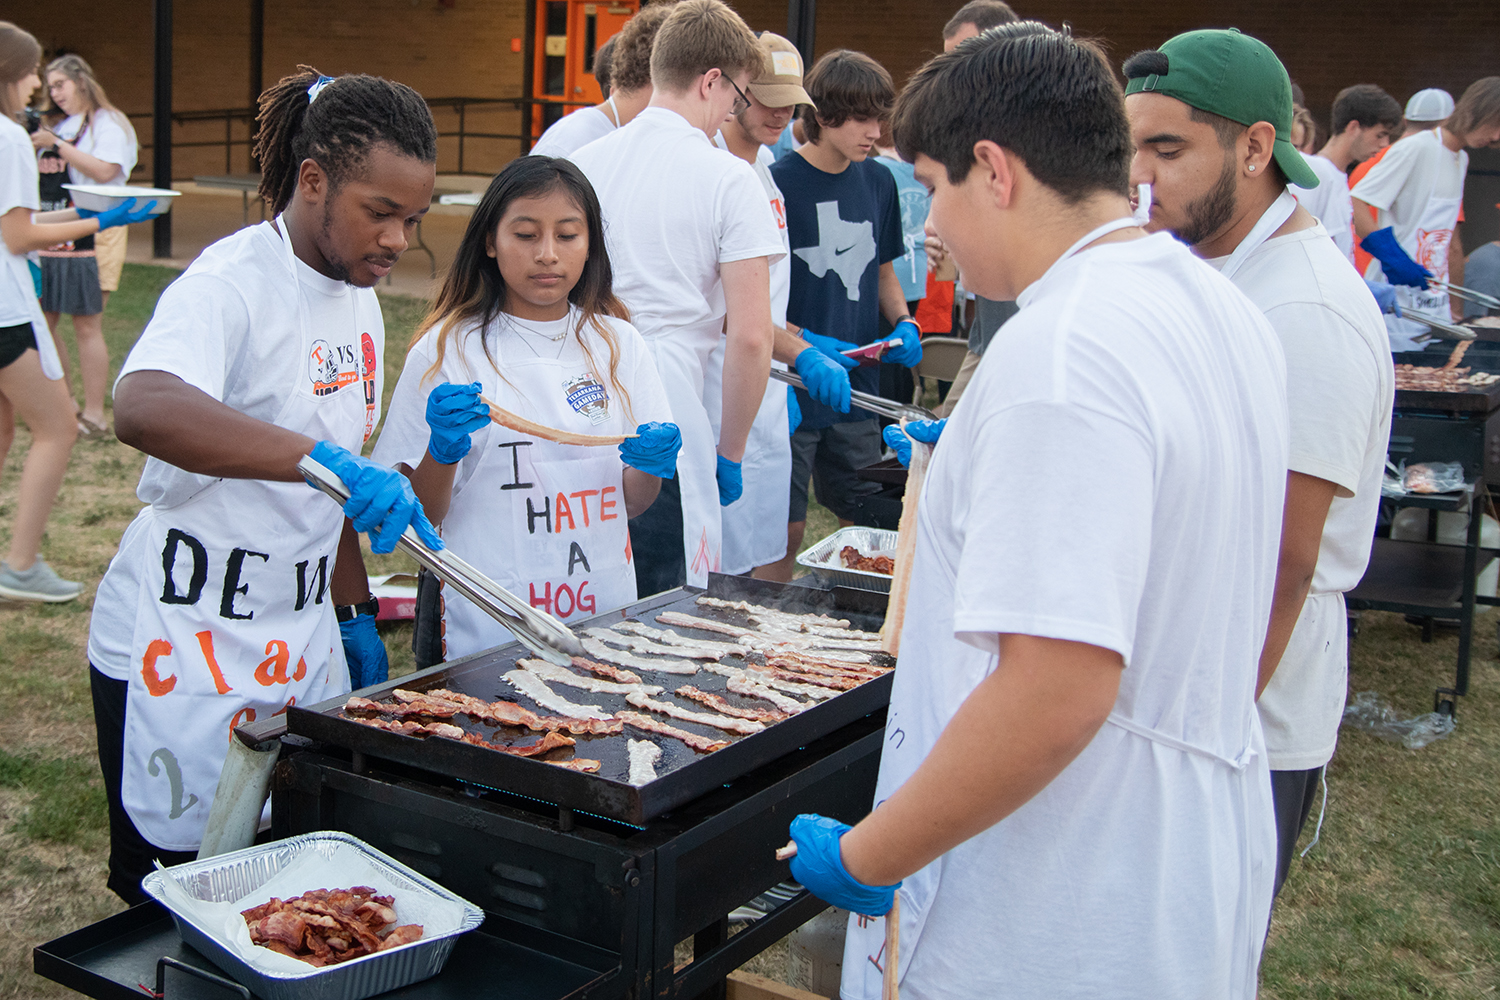 Seniors Dewoine Leeks, Rocioa Gabriel and Mathew Gass cook bacon on a propane griddle at the annual Bacon Fry the morning of the 2019 Texas vs. Arkansas football game. Seniors prepared breakfast for the rest of the student body and community.